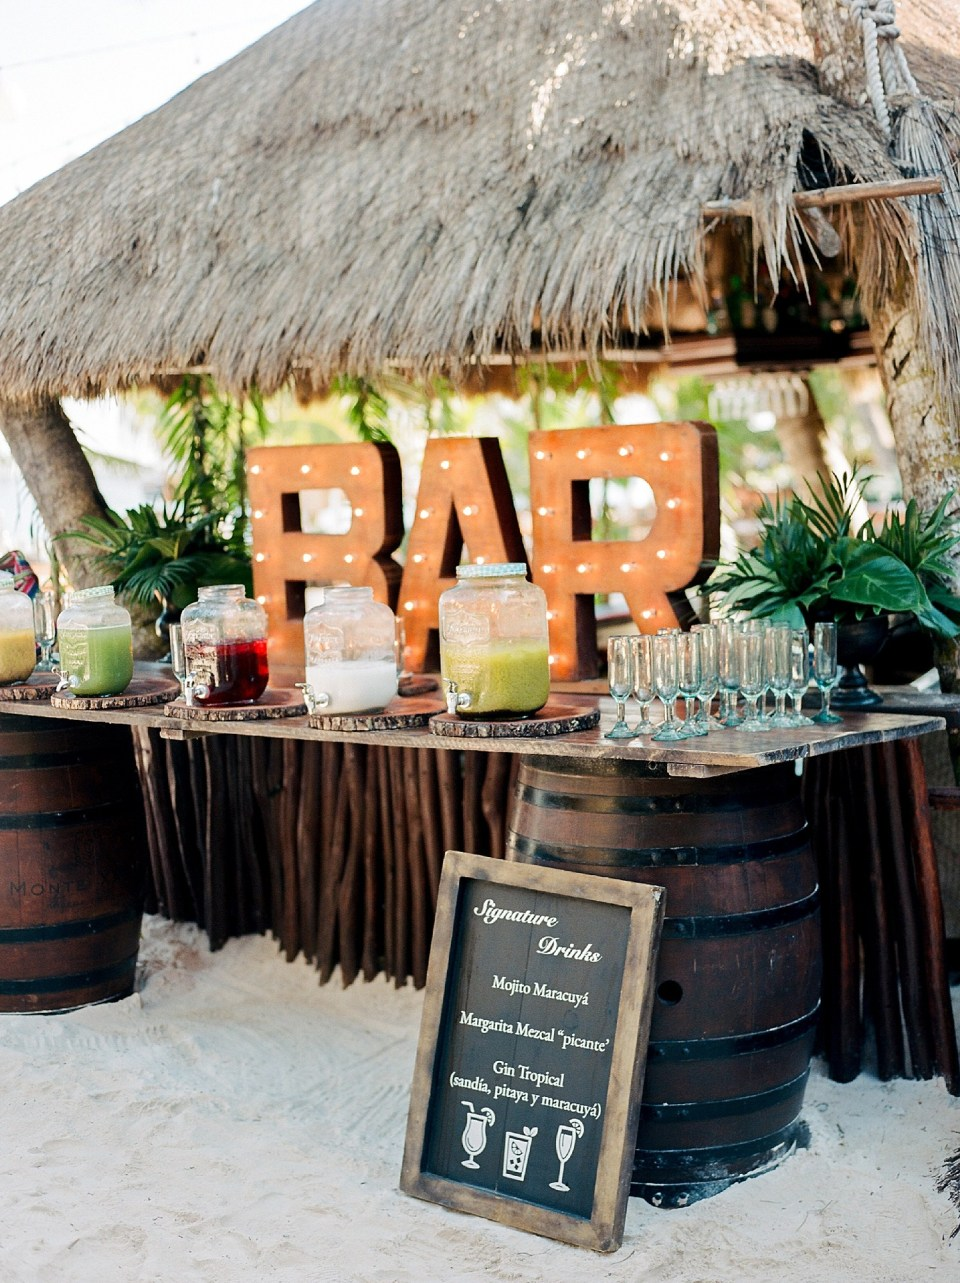 creative beach wedding drink bar ideas with light up letter signs